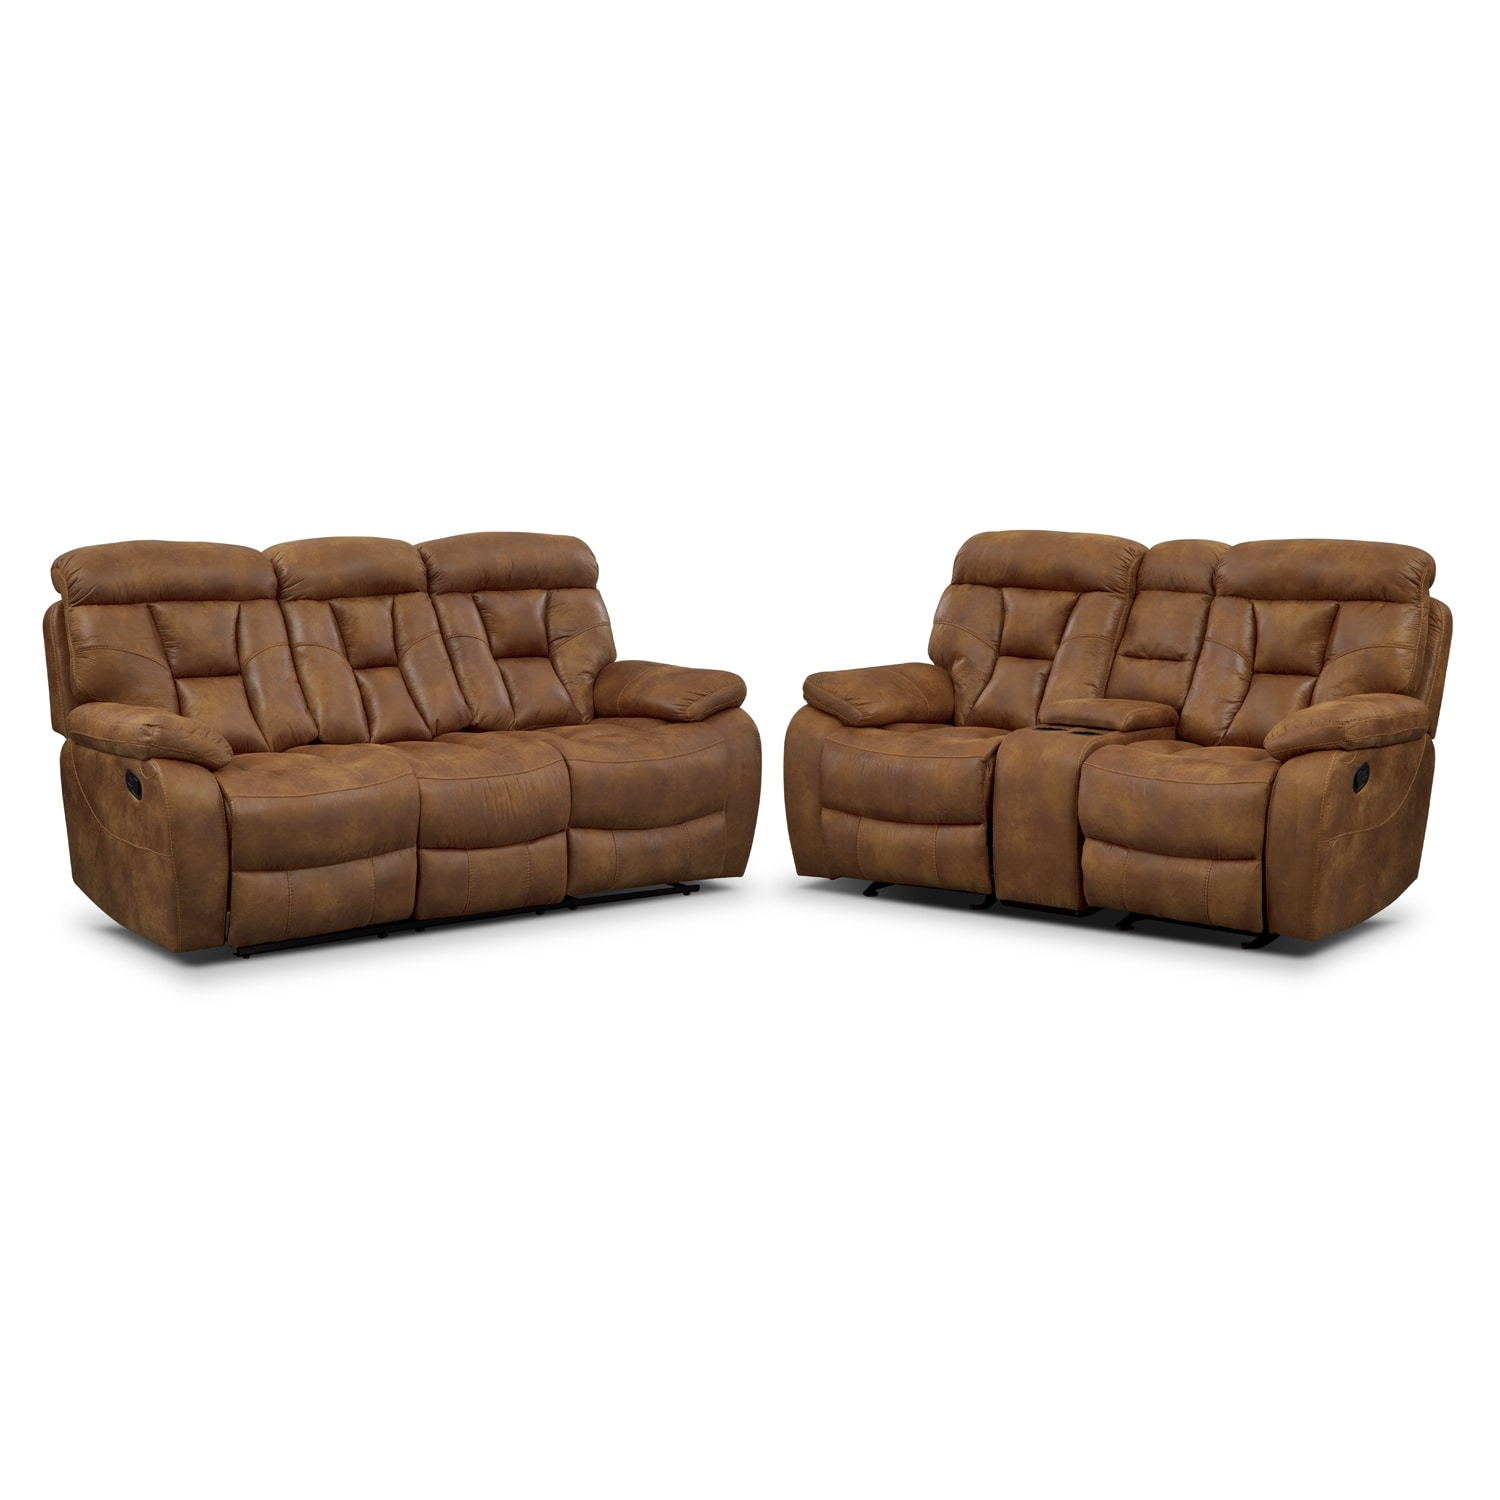 Living Room Furniture - Dakota II 2 Pc. Reclining Living Room